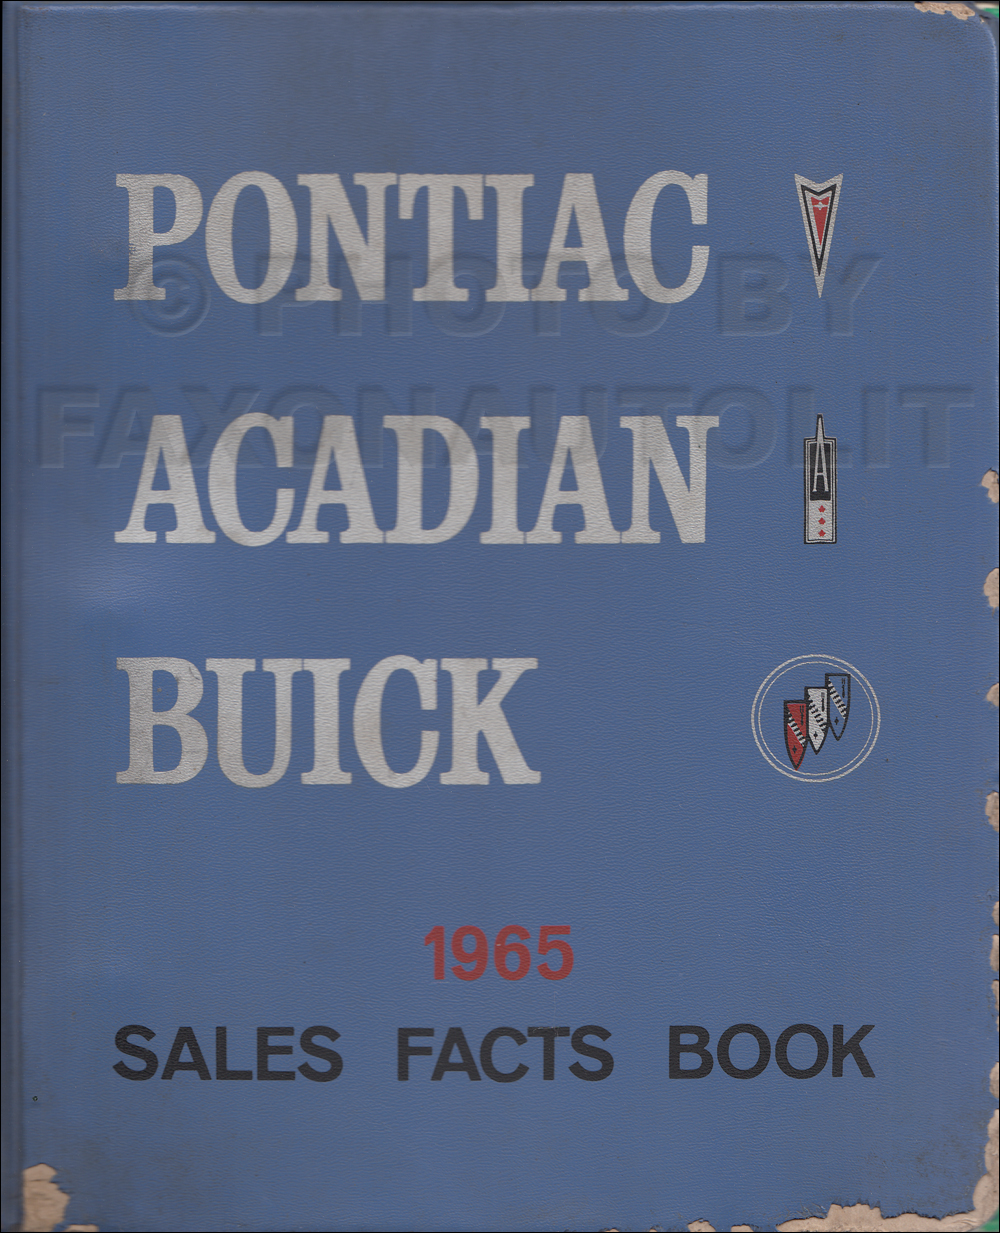 1965 Buick, Pontiac, and Acadian Facts Book Canadian Original